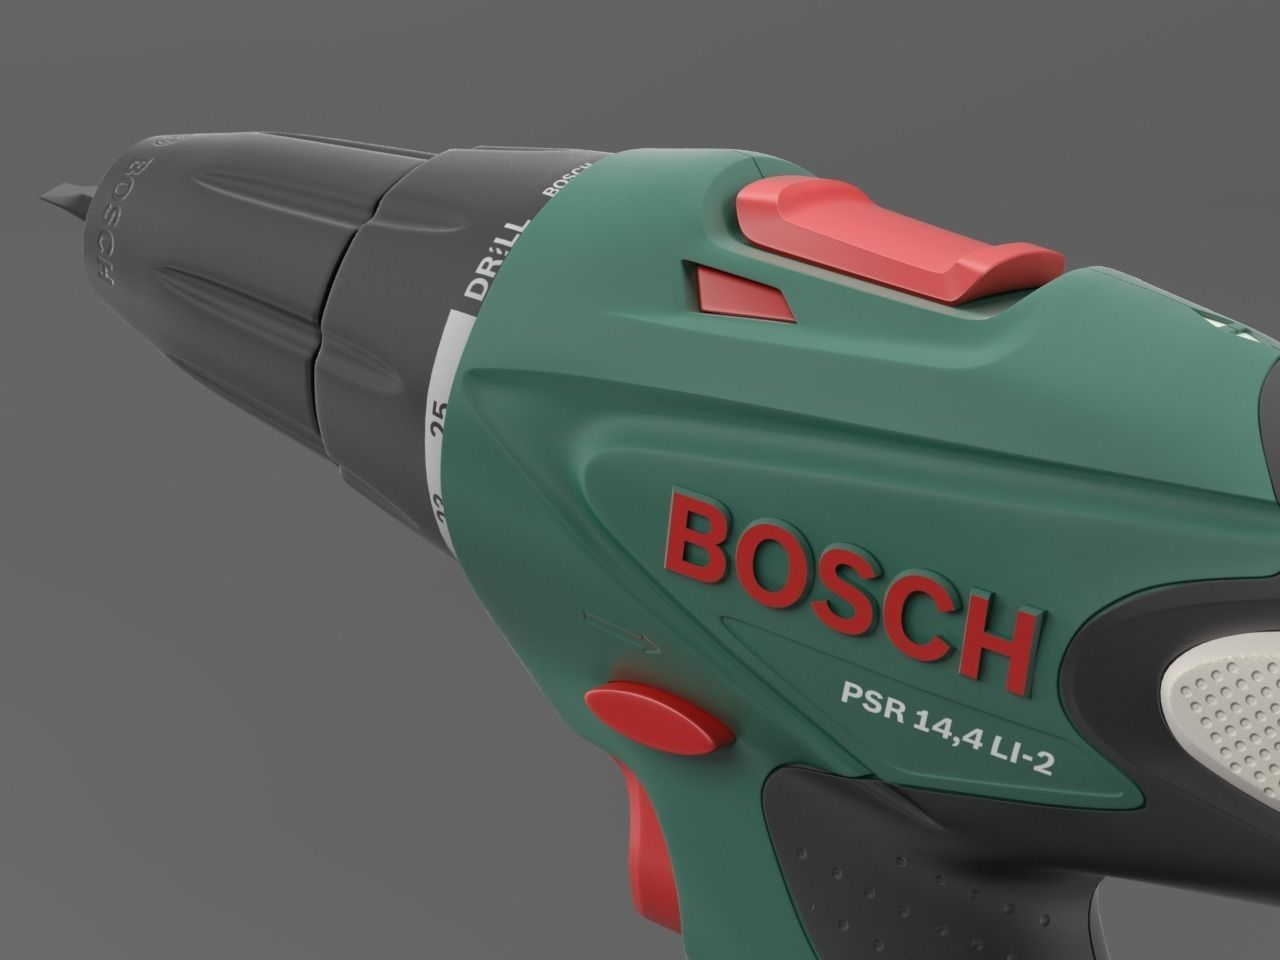 cordless drill screwdriver bosch psr 14 4 3d model max obj. Black Bedroom Furniture Sets. Home Design Ideas